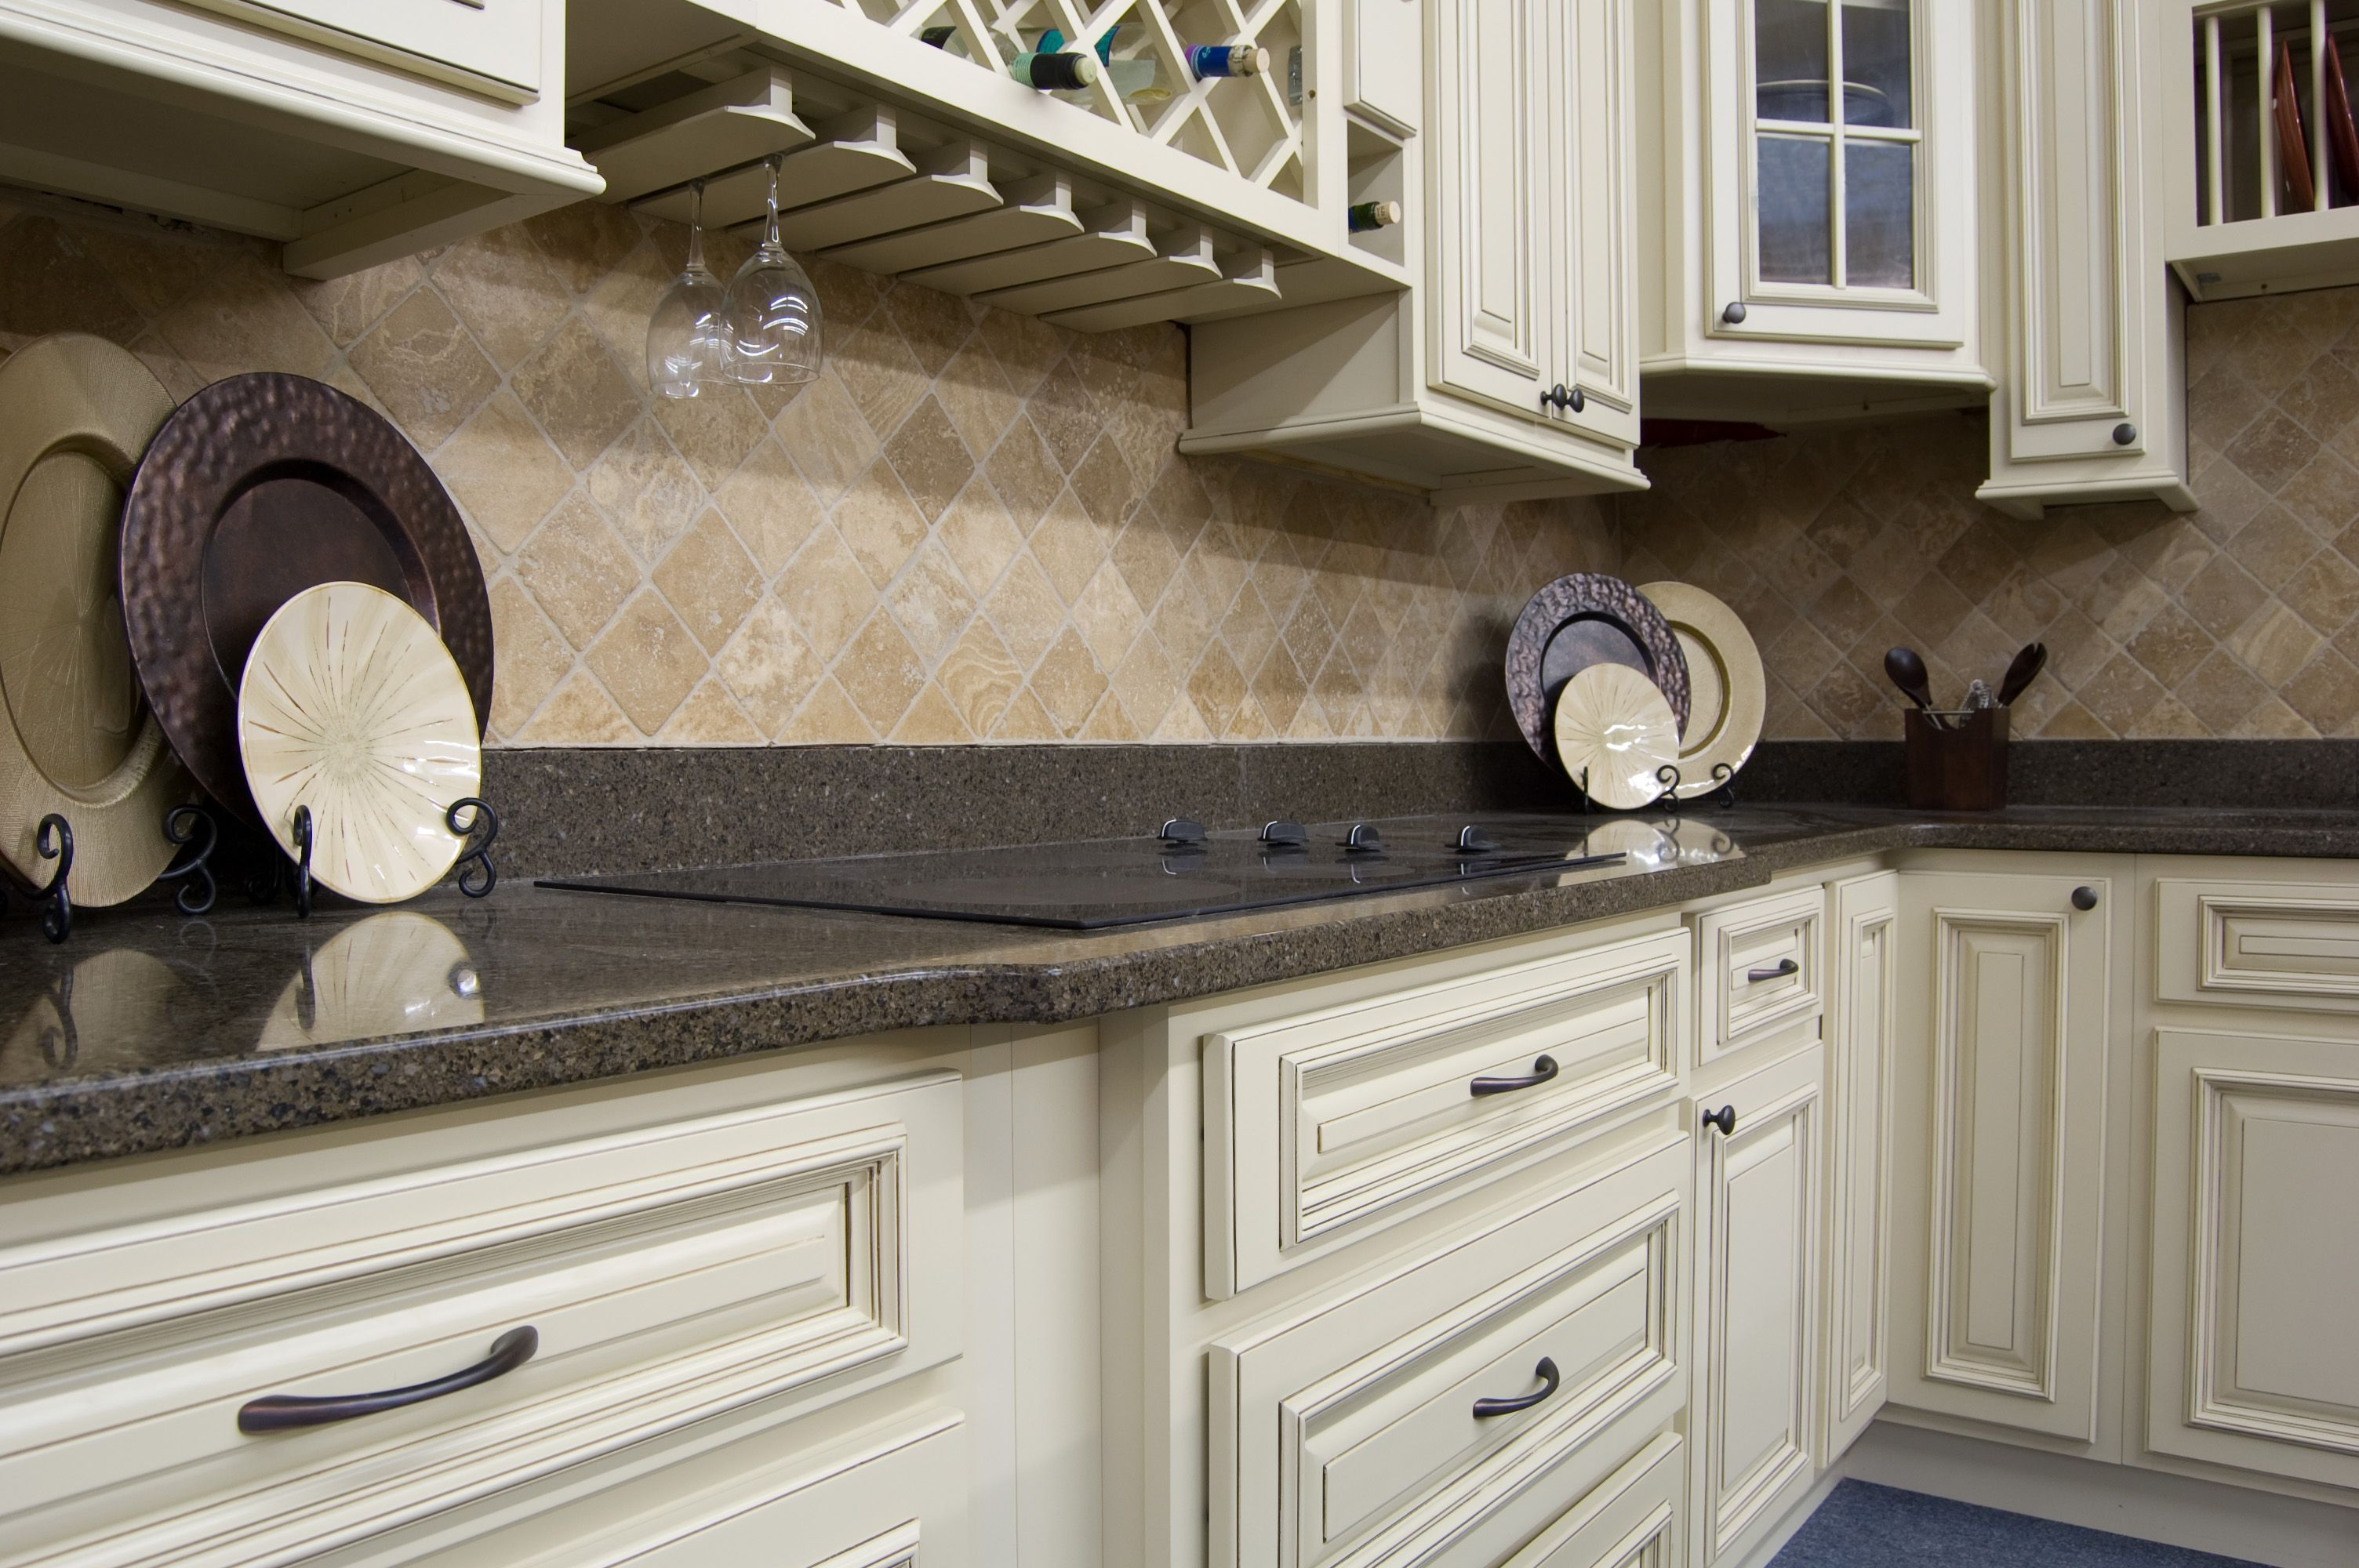 Heritage White Cabinets With Quartz Counter Top And